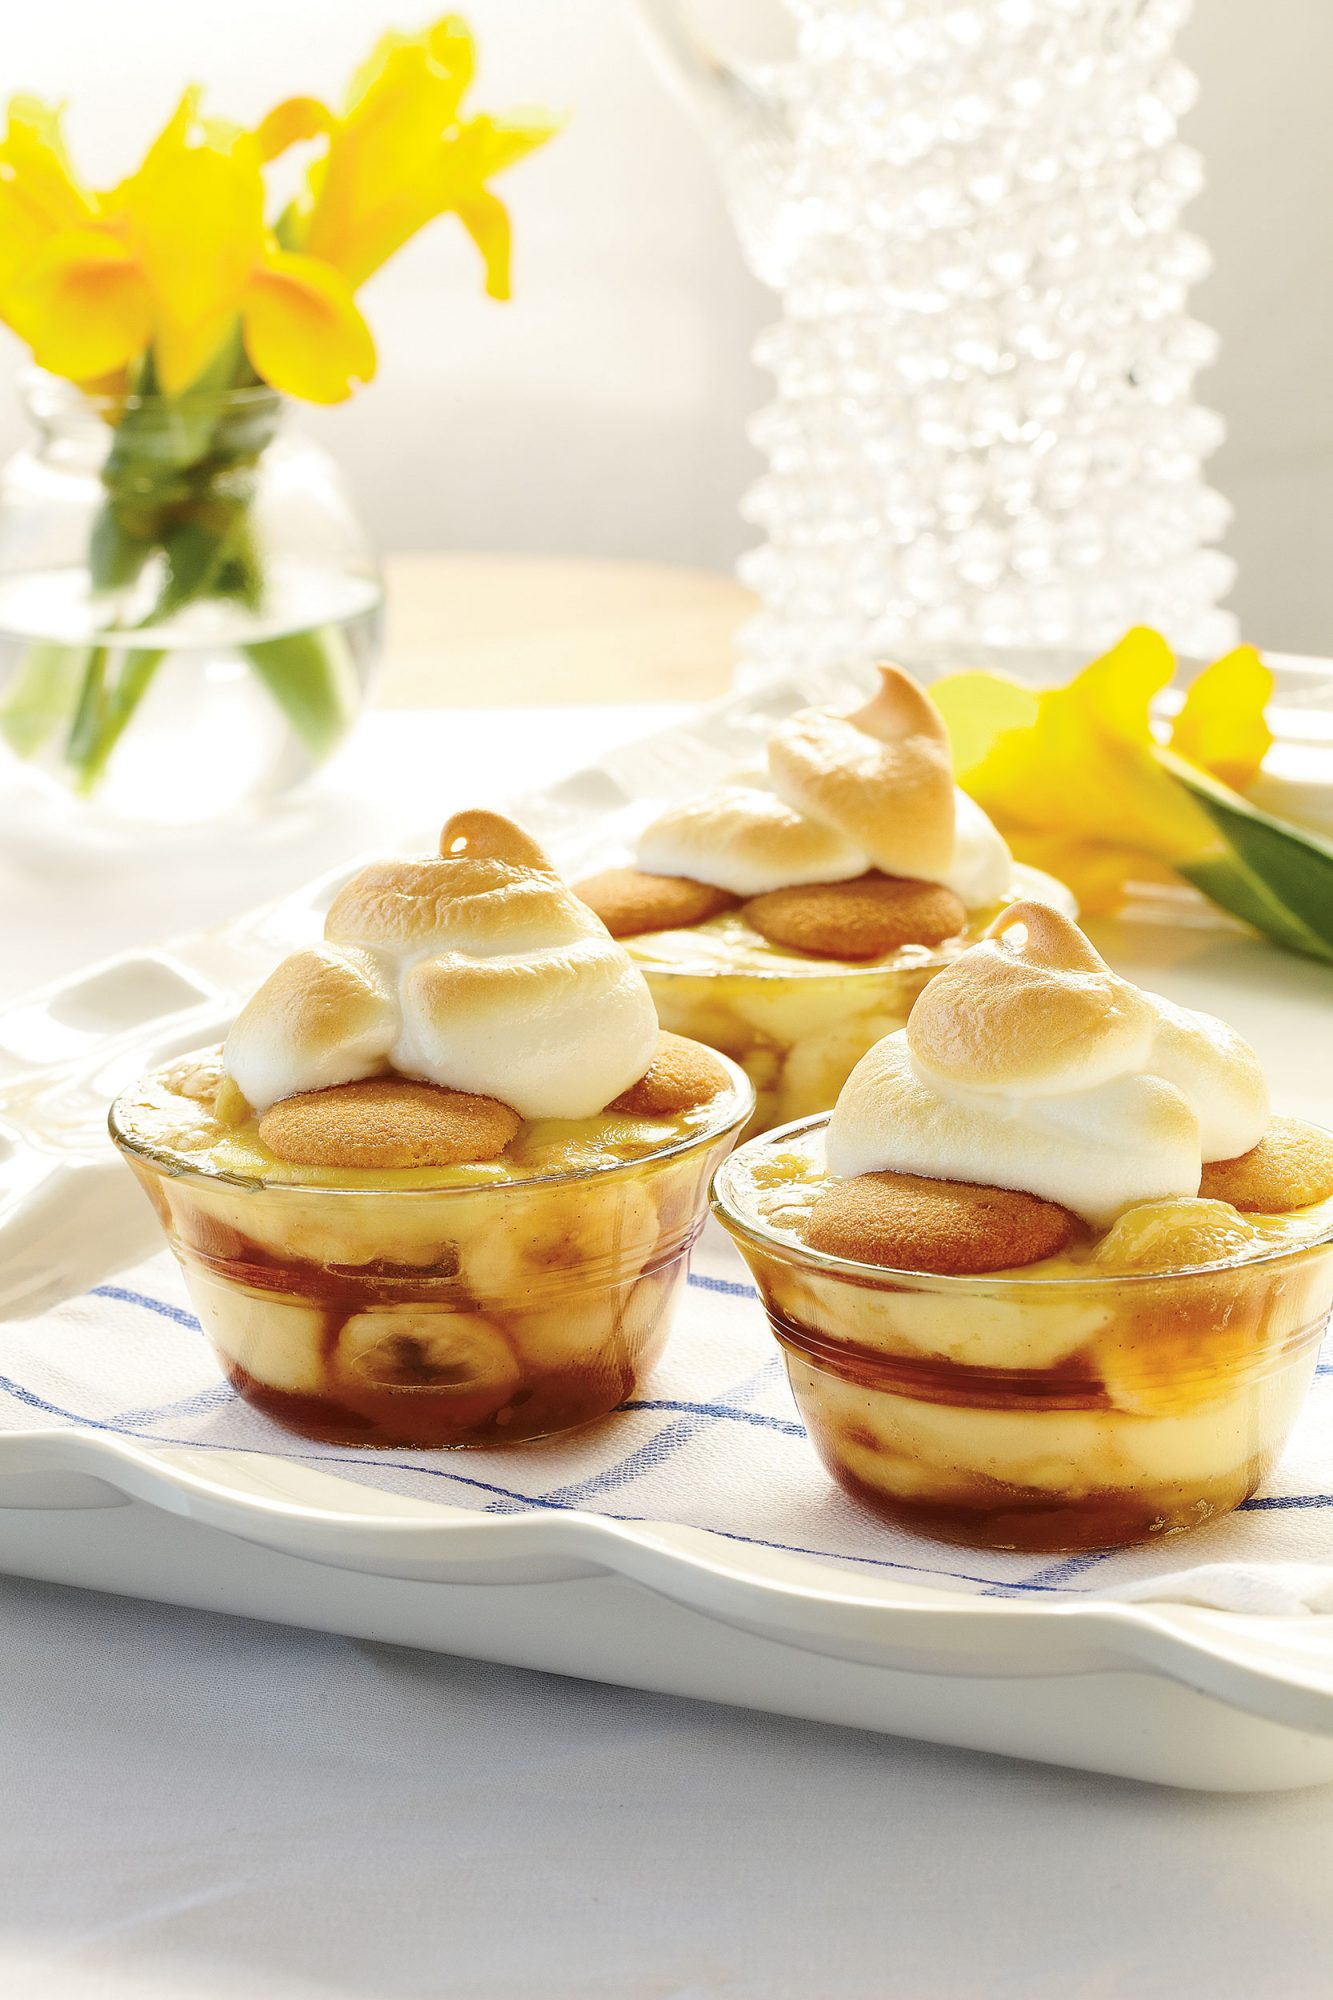 Dessert Recipes: Caramelized Banana Pudding